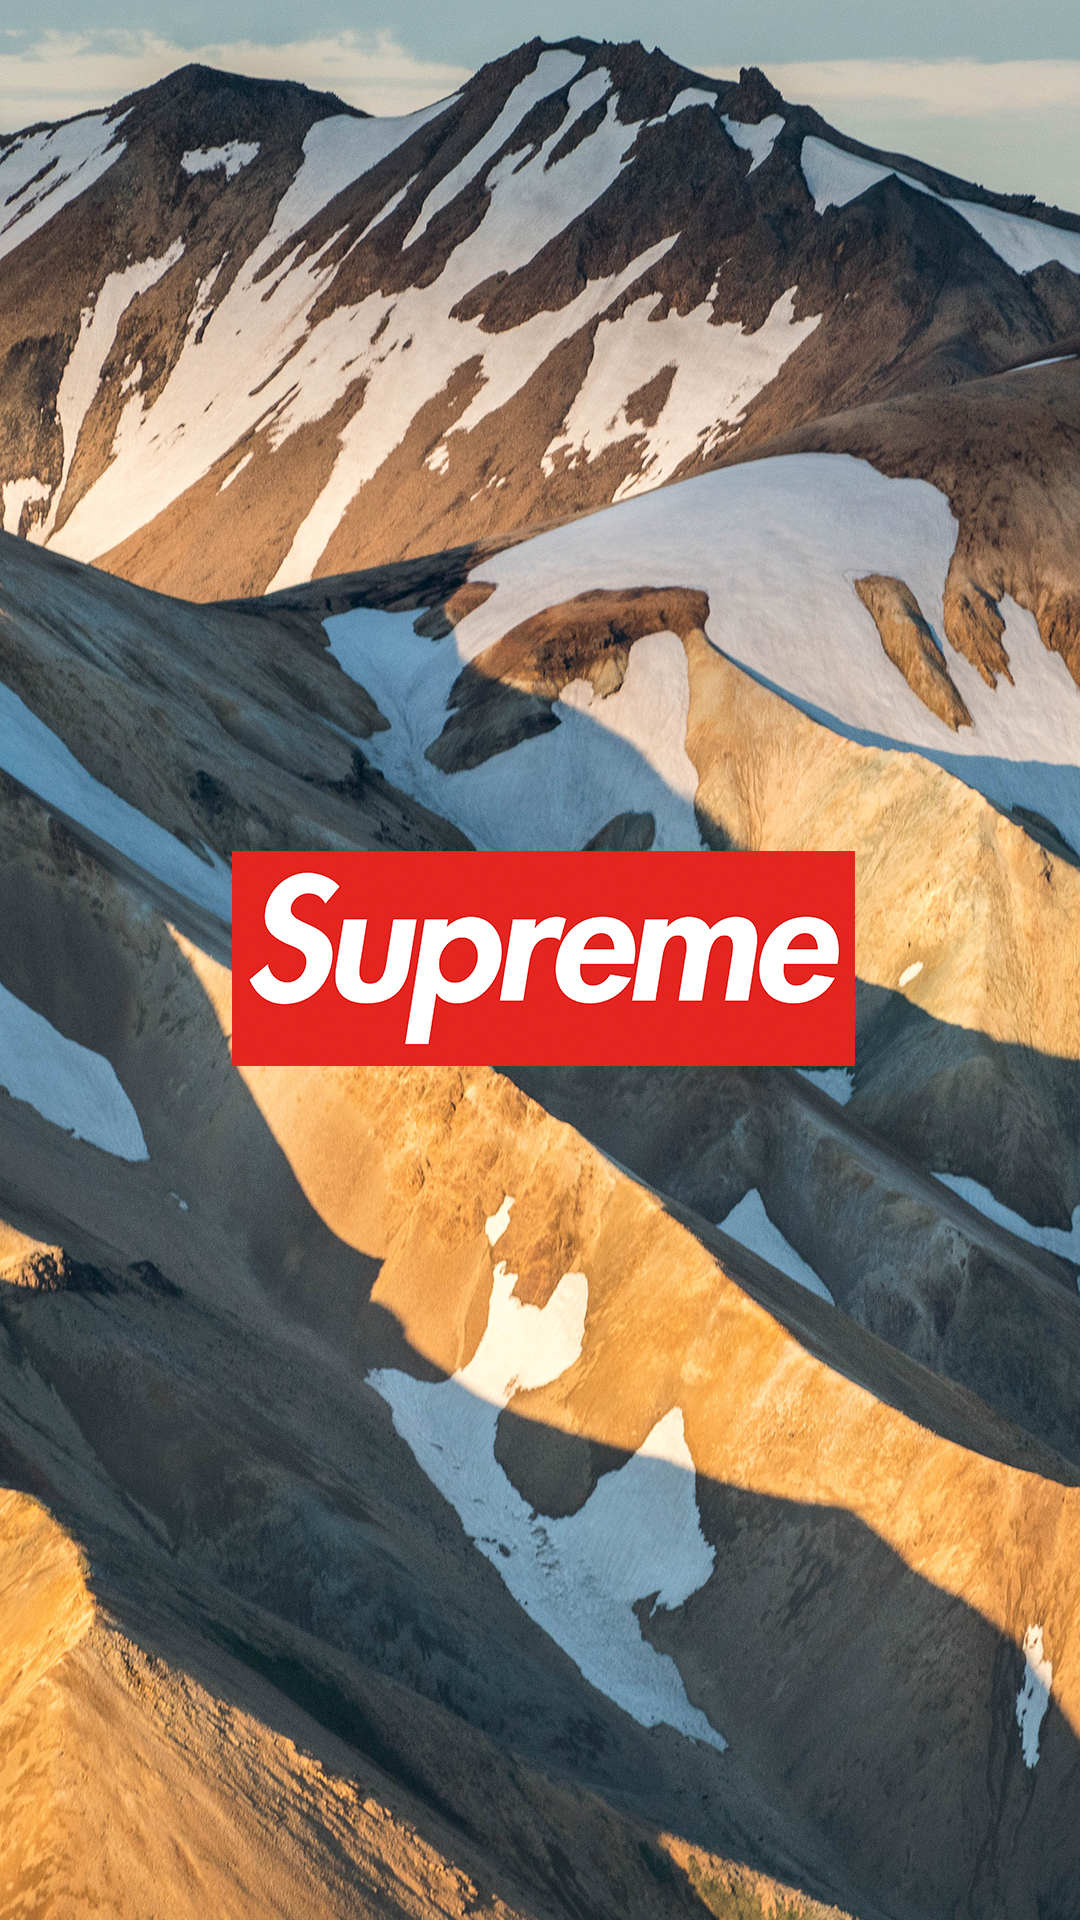 Supreme Mountain